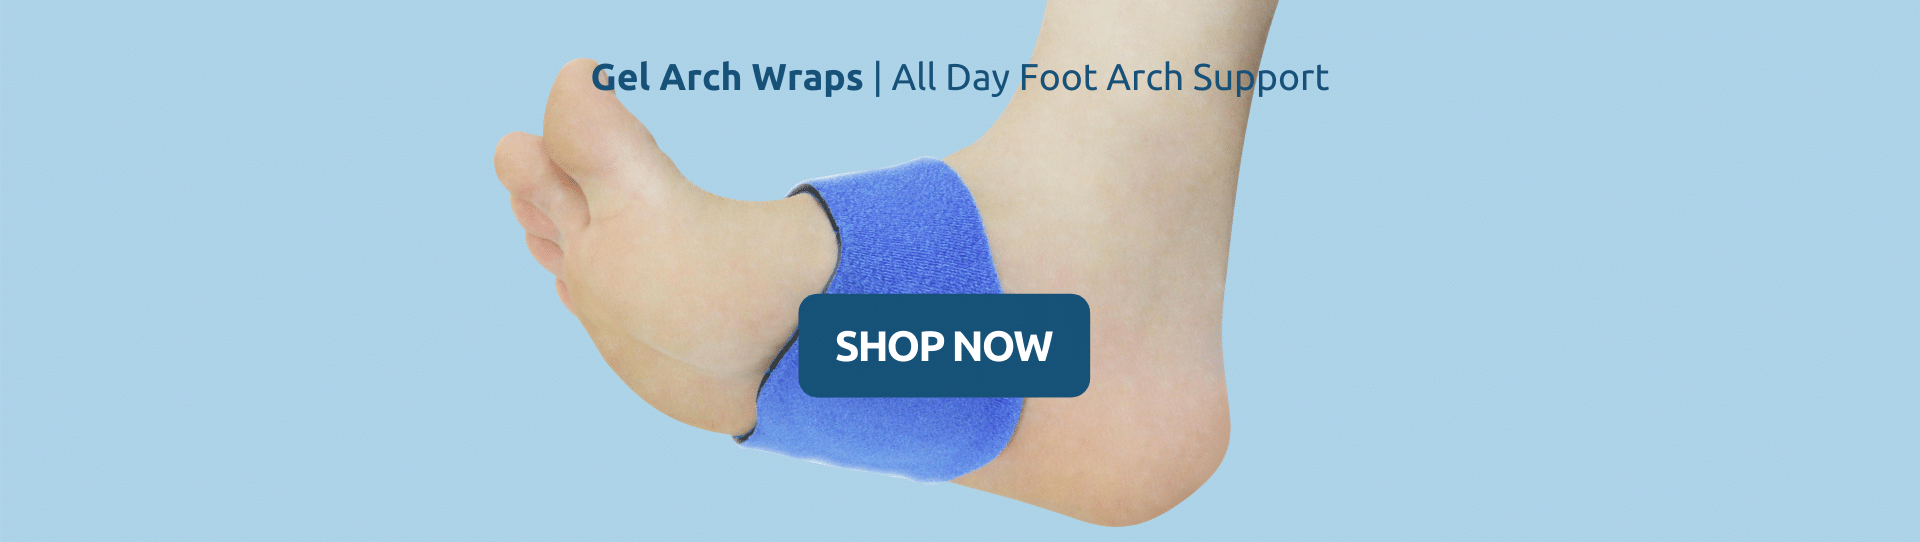 Buy Gel Arch Wraps All Day Foot Arch Support